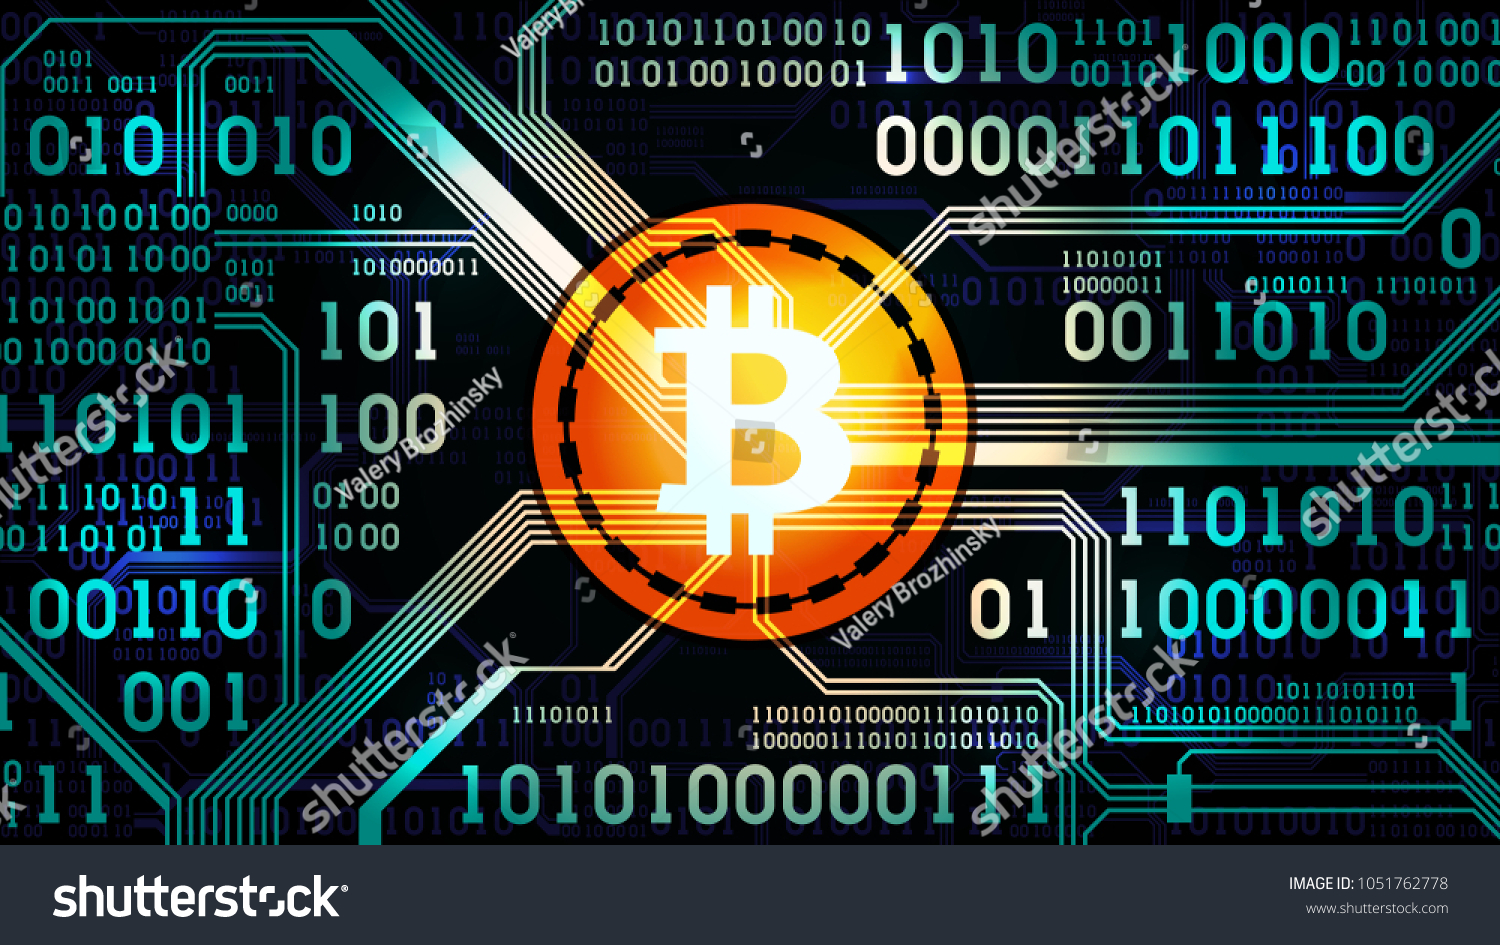 Symbol Crypto Currency Bitcoin On Background Stock Illustration Circuit Board Virus Text Image Of The Binary Code And Printed